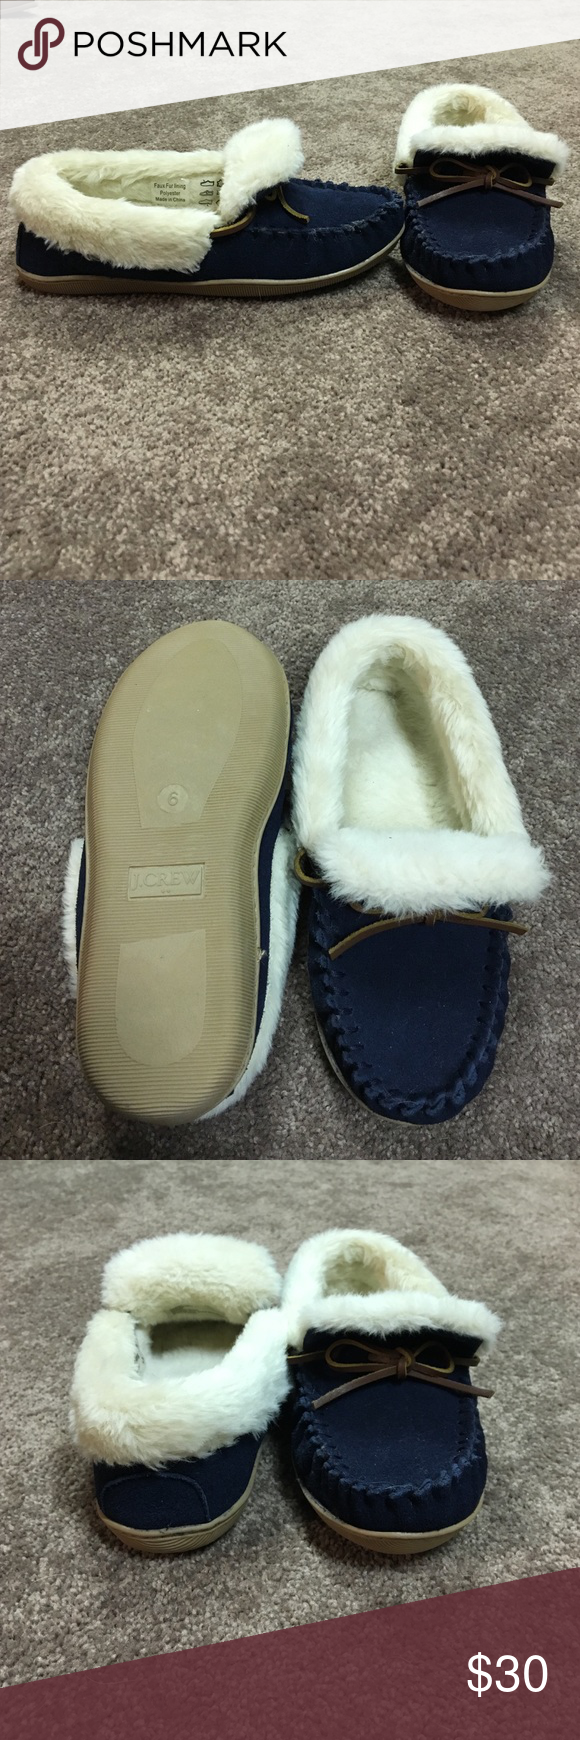 J. Crew Navy Moccasins J. Crew Navy Moccasins. Never Worn. Size 6 J. Crew Shoes Moccasins